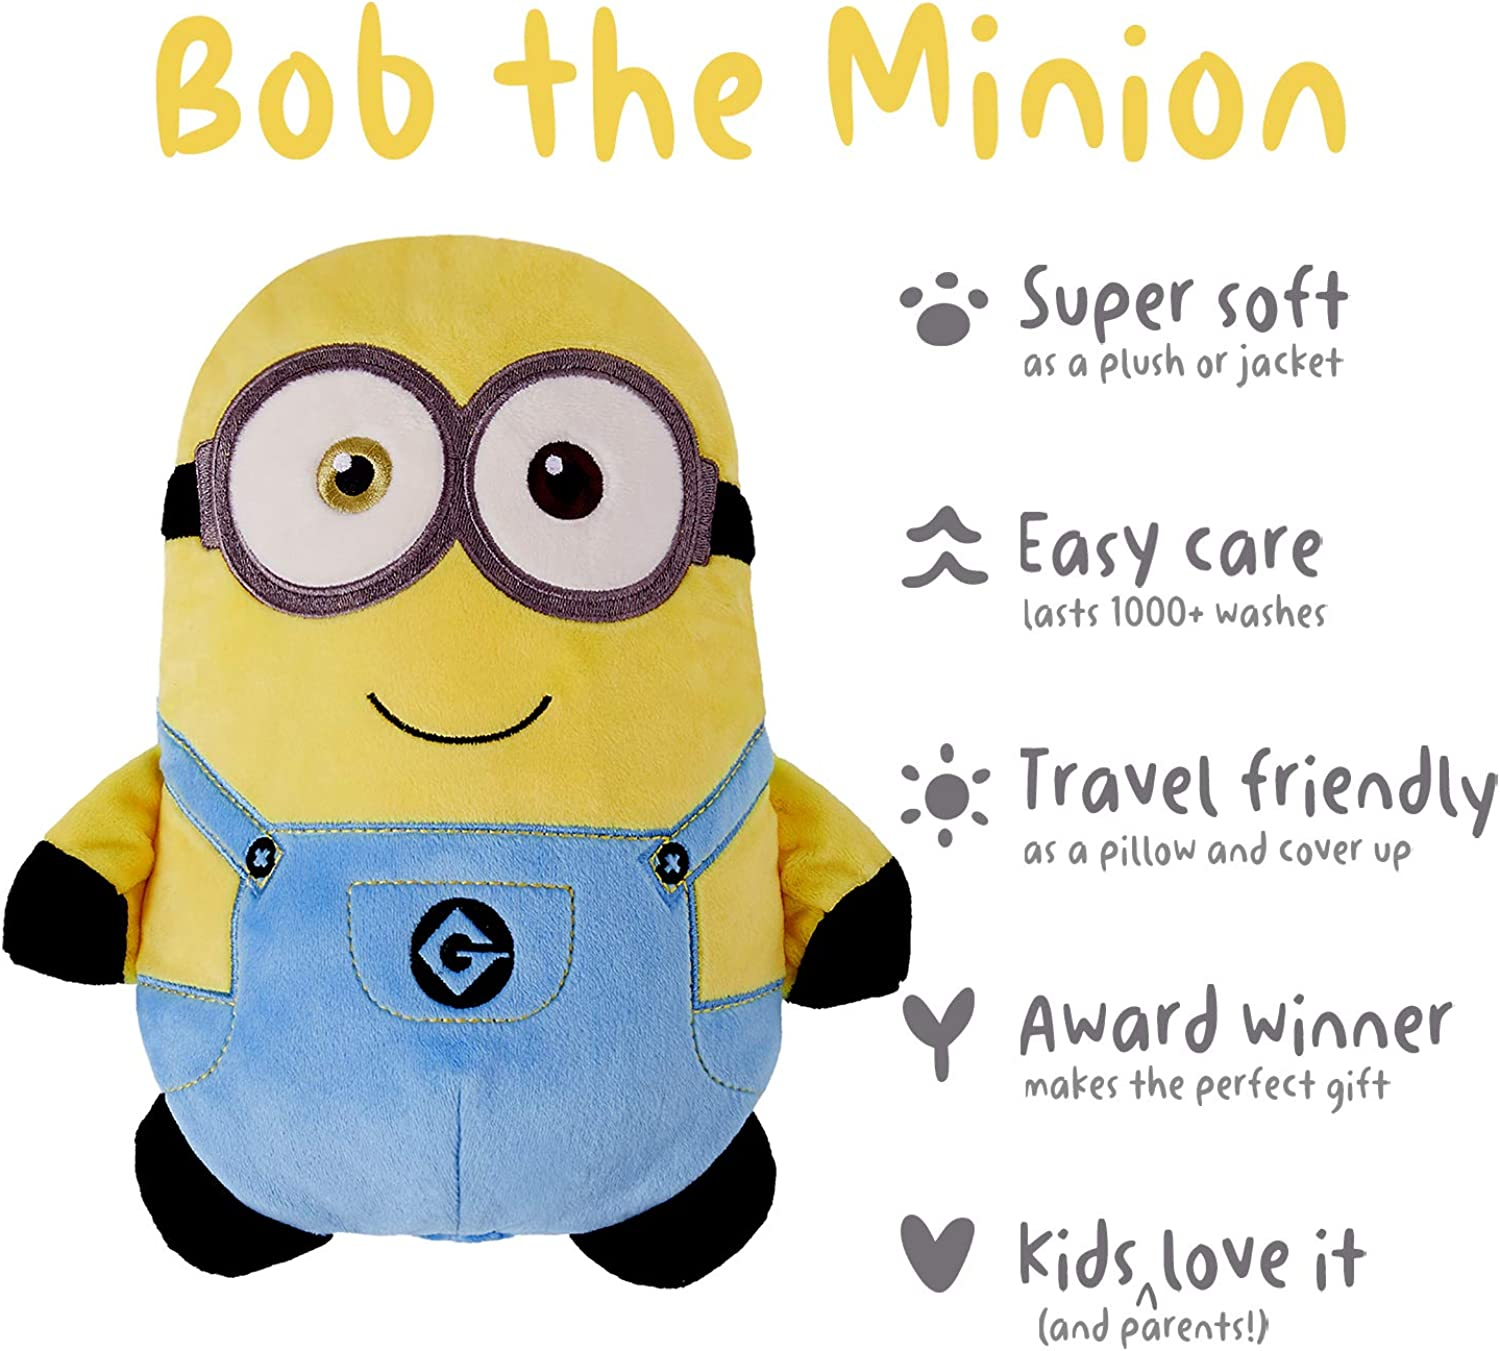 2-in-1 Transforming Hoodie and Soft Plushie Cubcoats Bob The Minion Minion Yellow